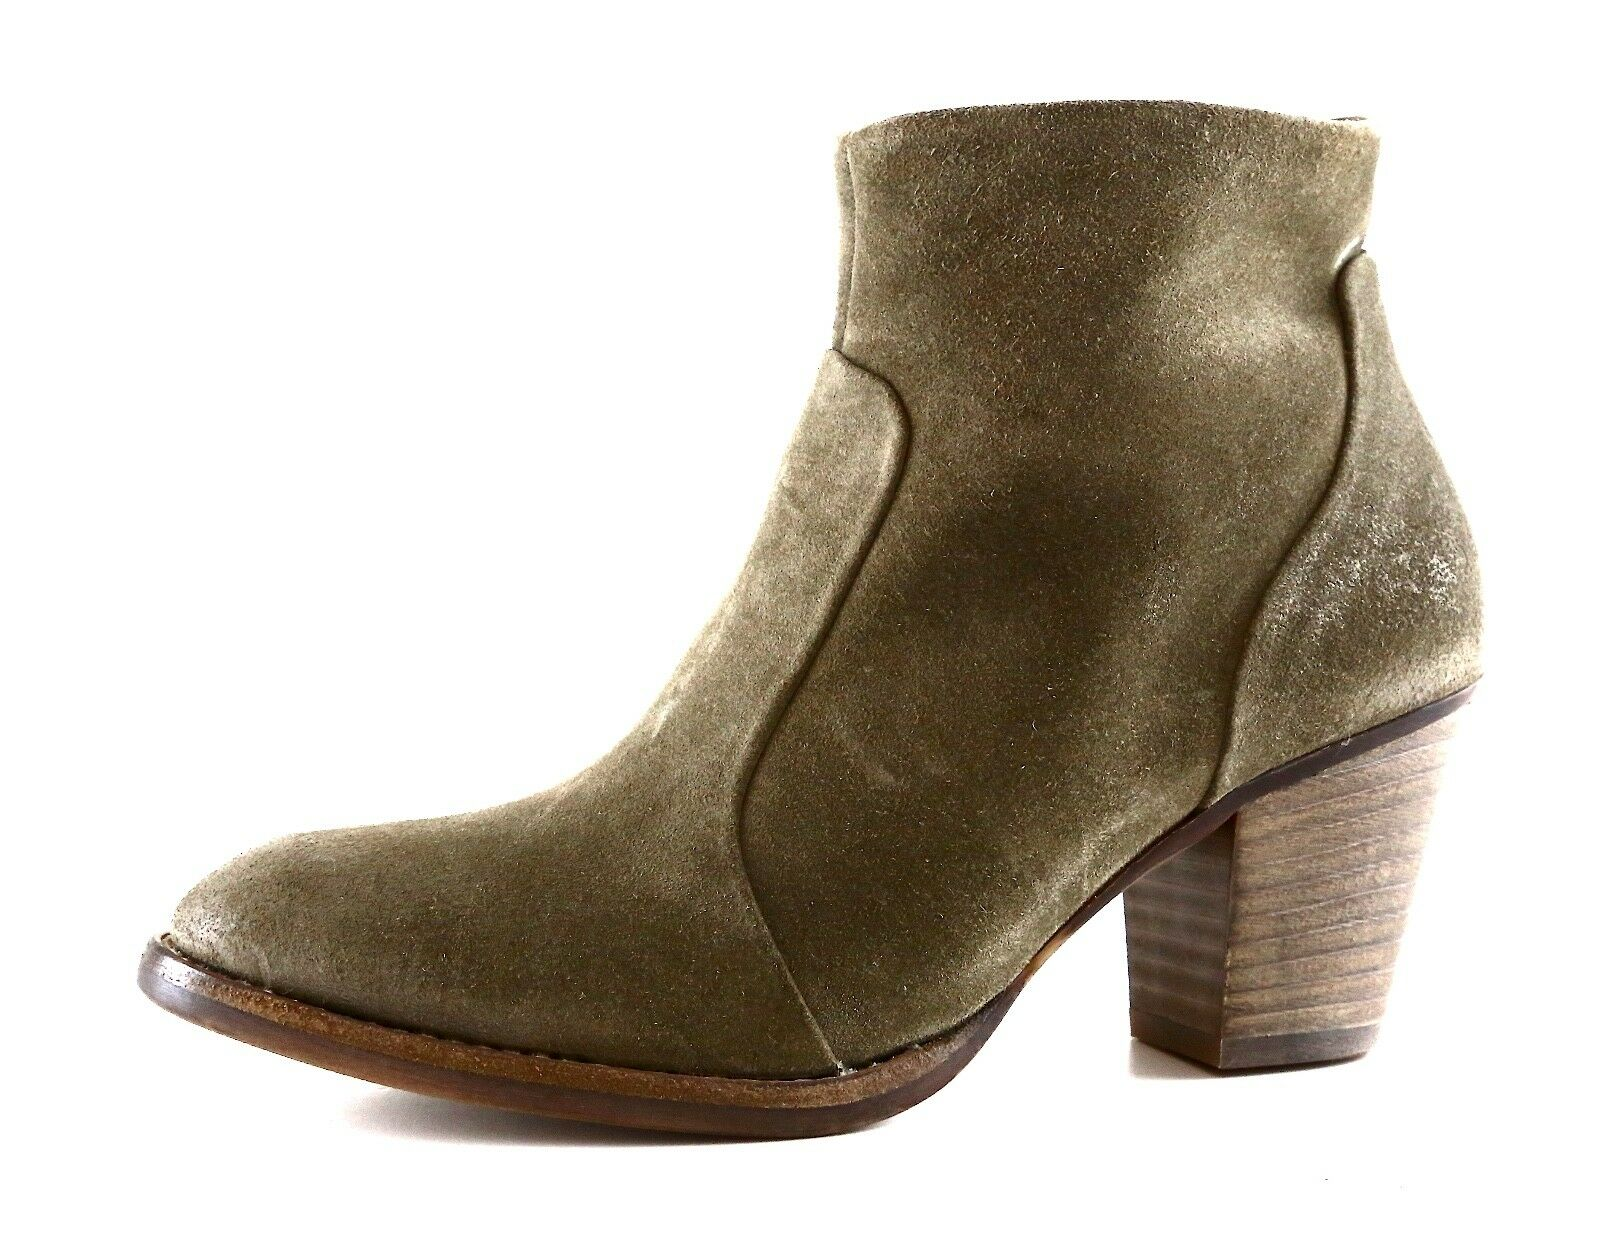 Paul Green Reese Suede Ankle Bootie Olive Women Sz 3.5 UK 5823